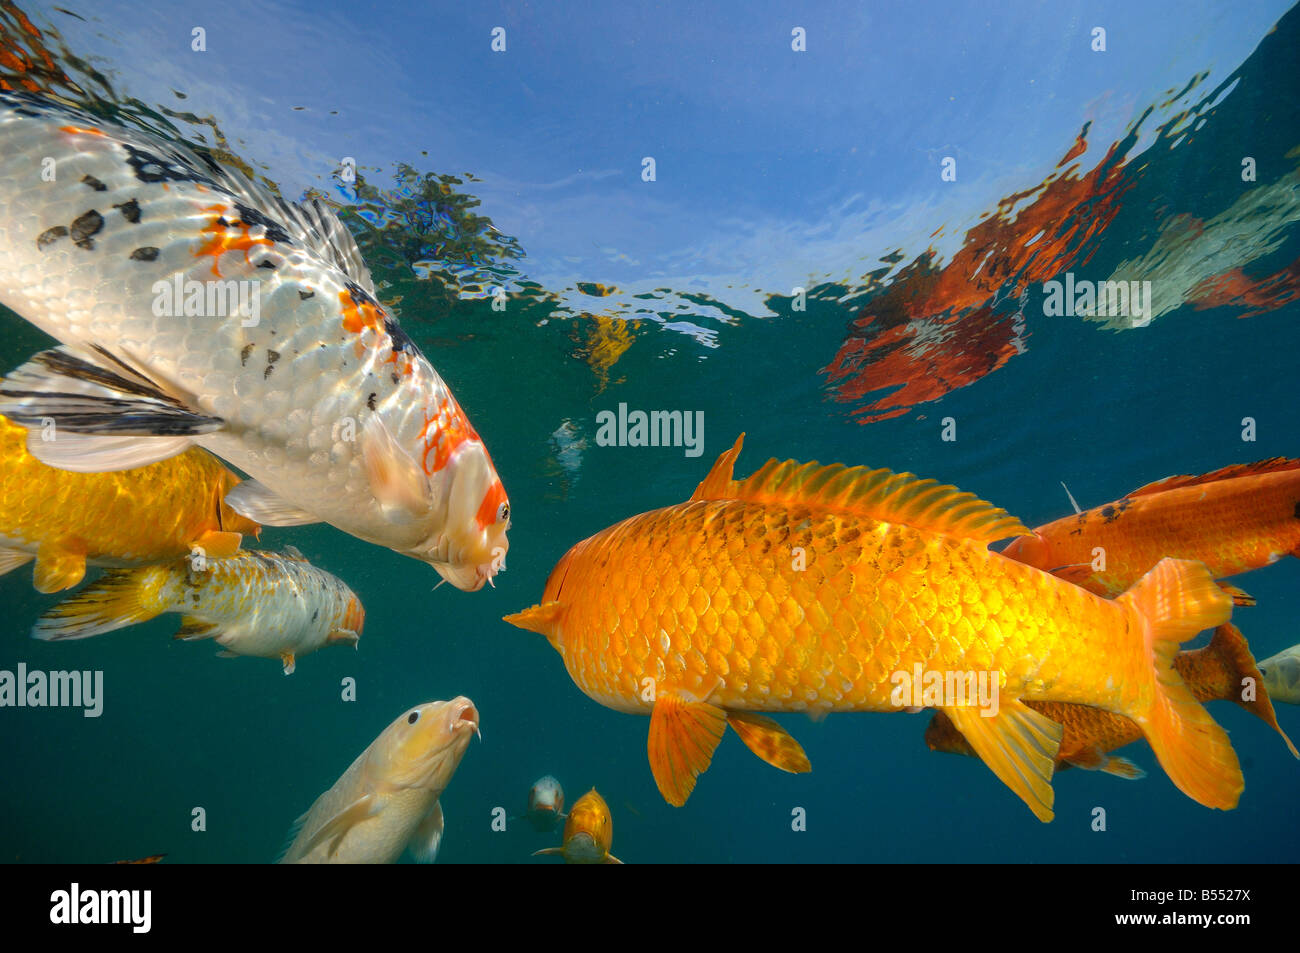 Koi are freshwater carp raised in ponds - Stock Image